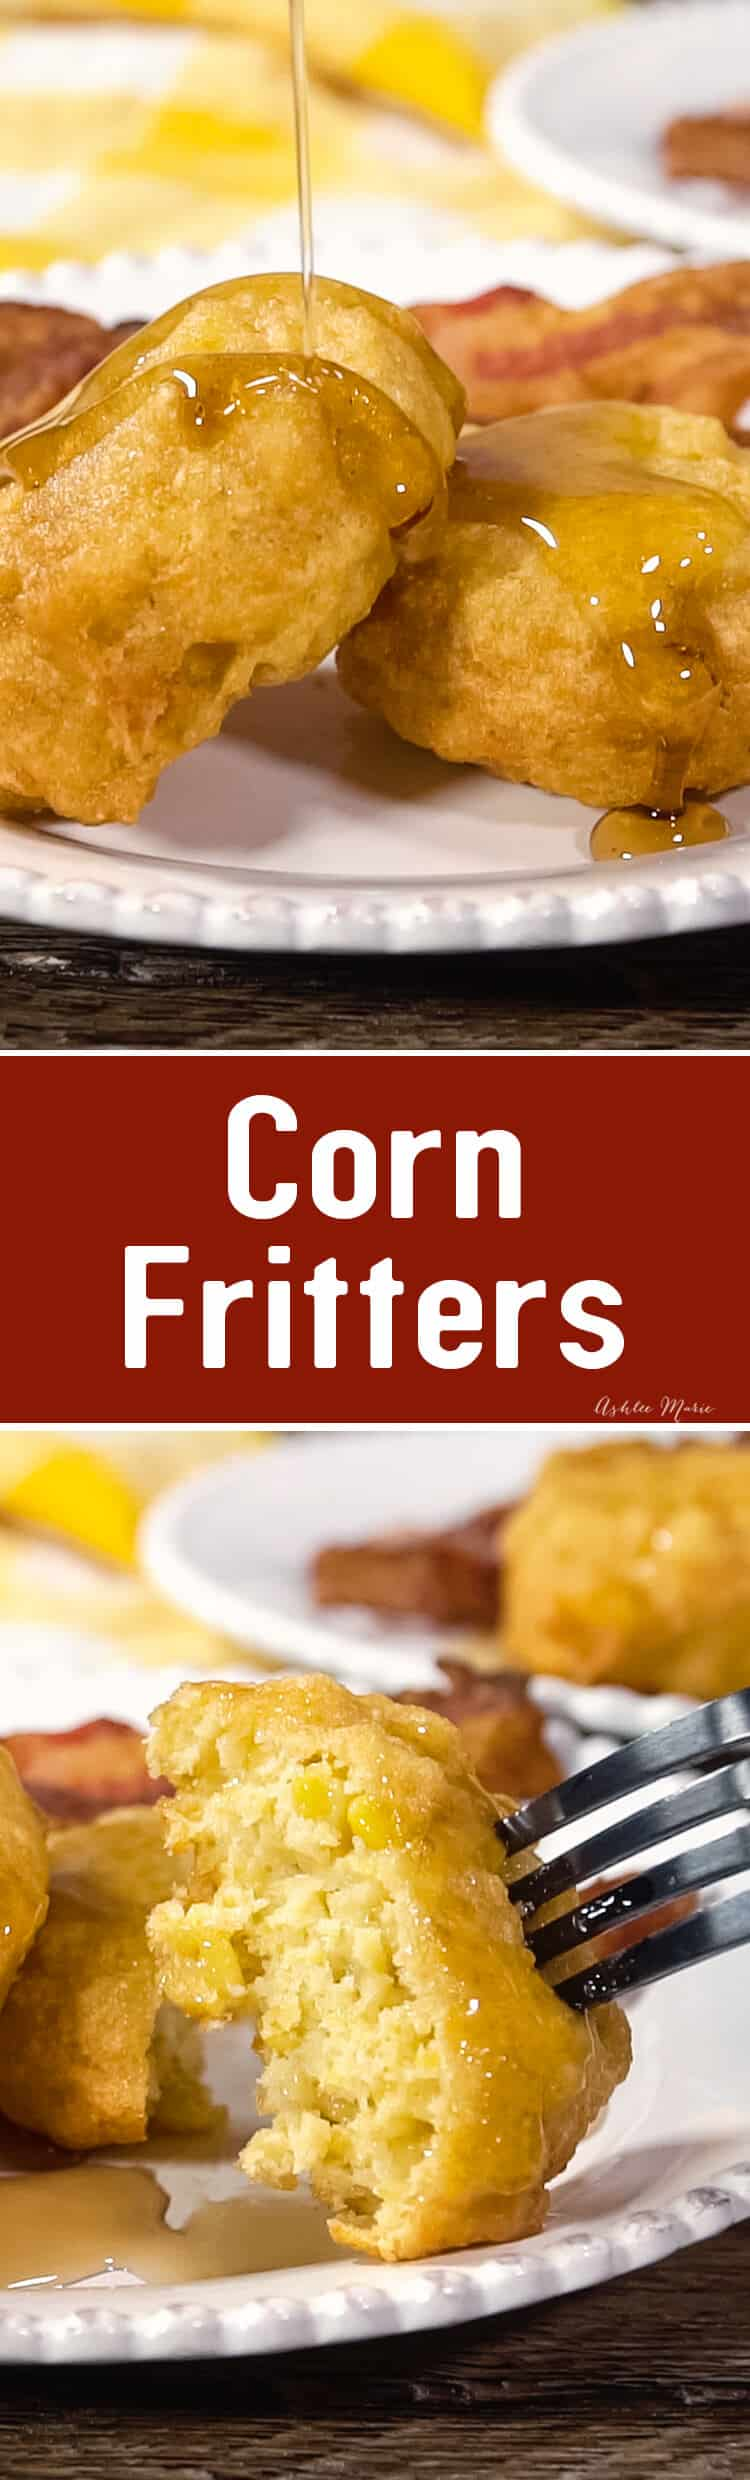 corn fritters are easy to make and taste amazing - my favorite breakfast - video tutorial